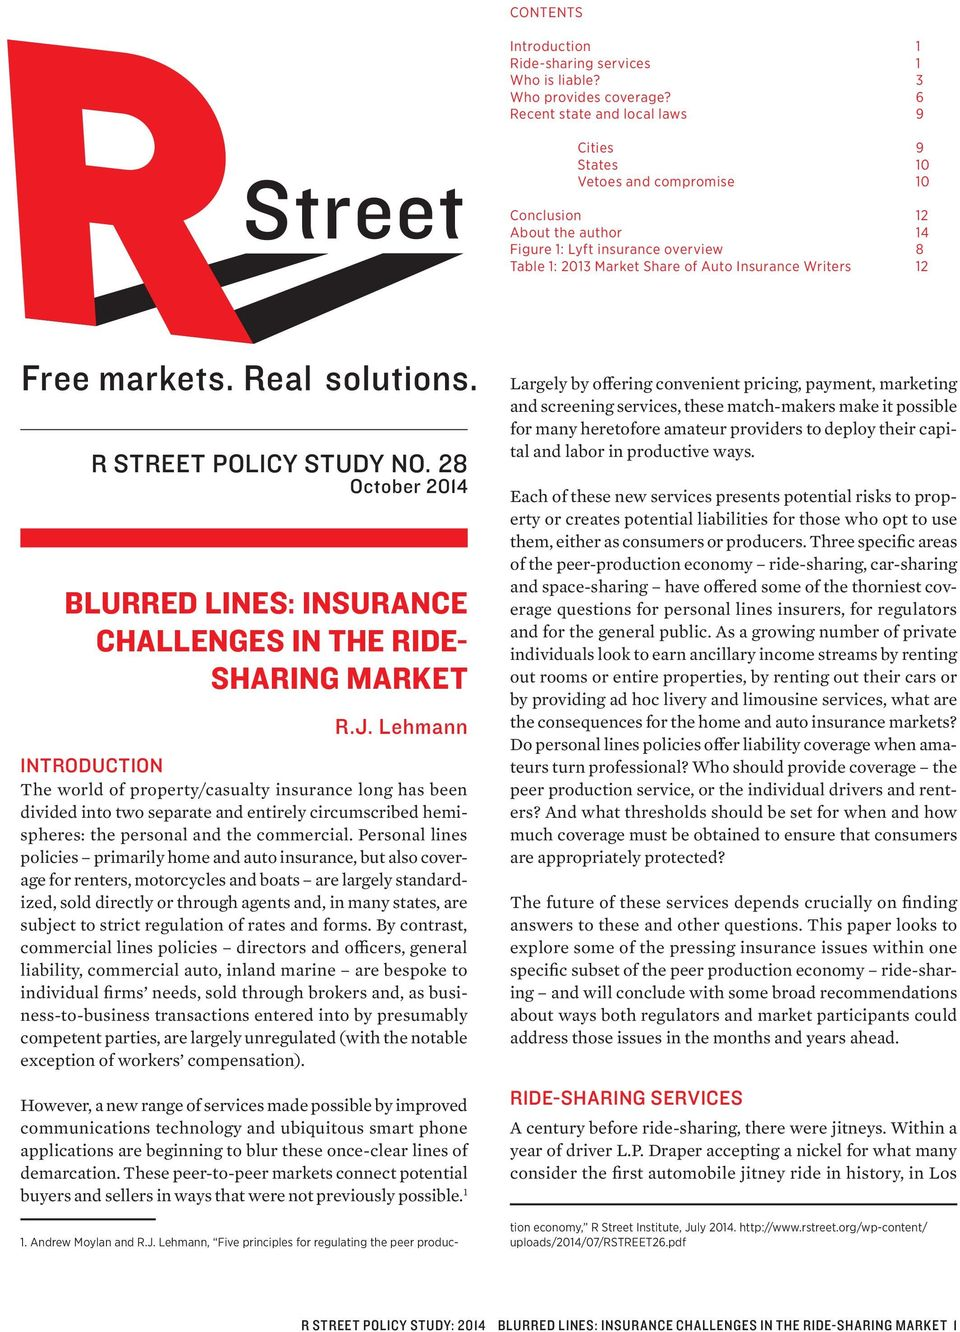 12 R STREET POLICY STUDY NO. 28 October 2014 BLURRED LINES: INSURANCE CHALLENGES IN THE RIDE- SHARING MARKET R.J.